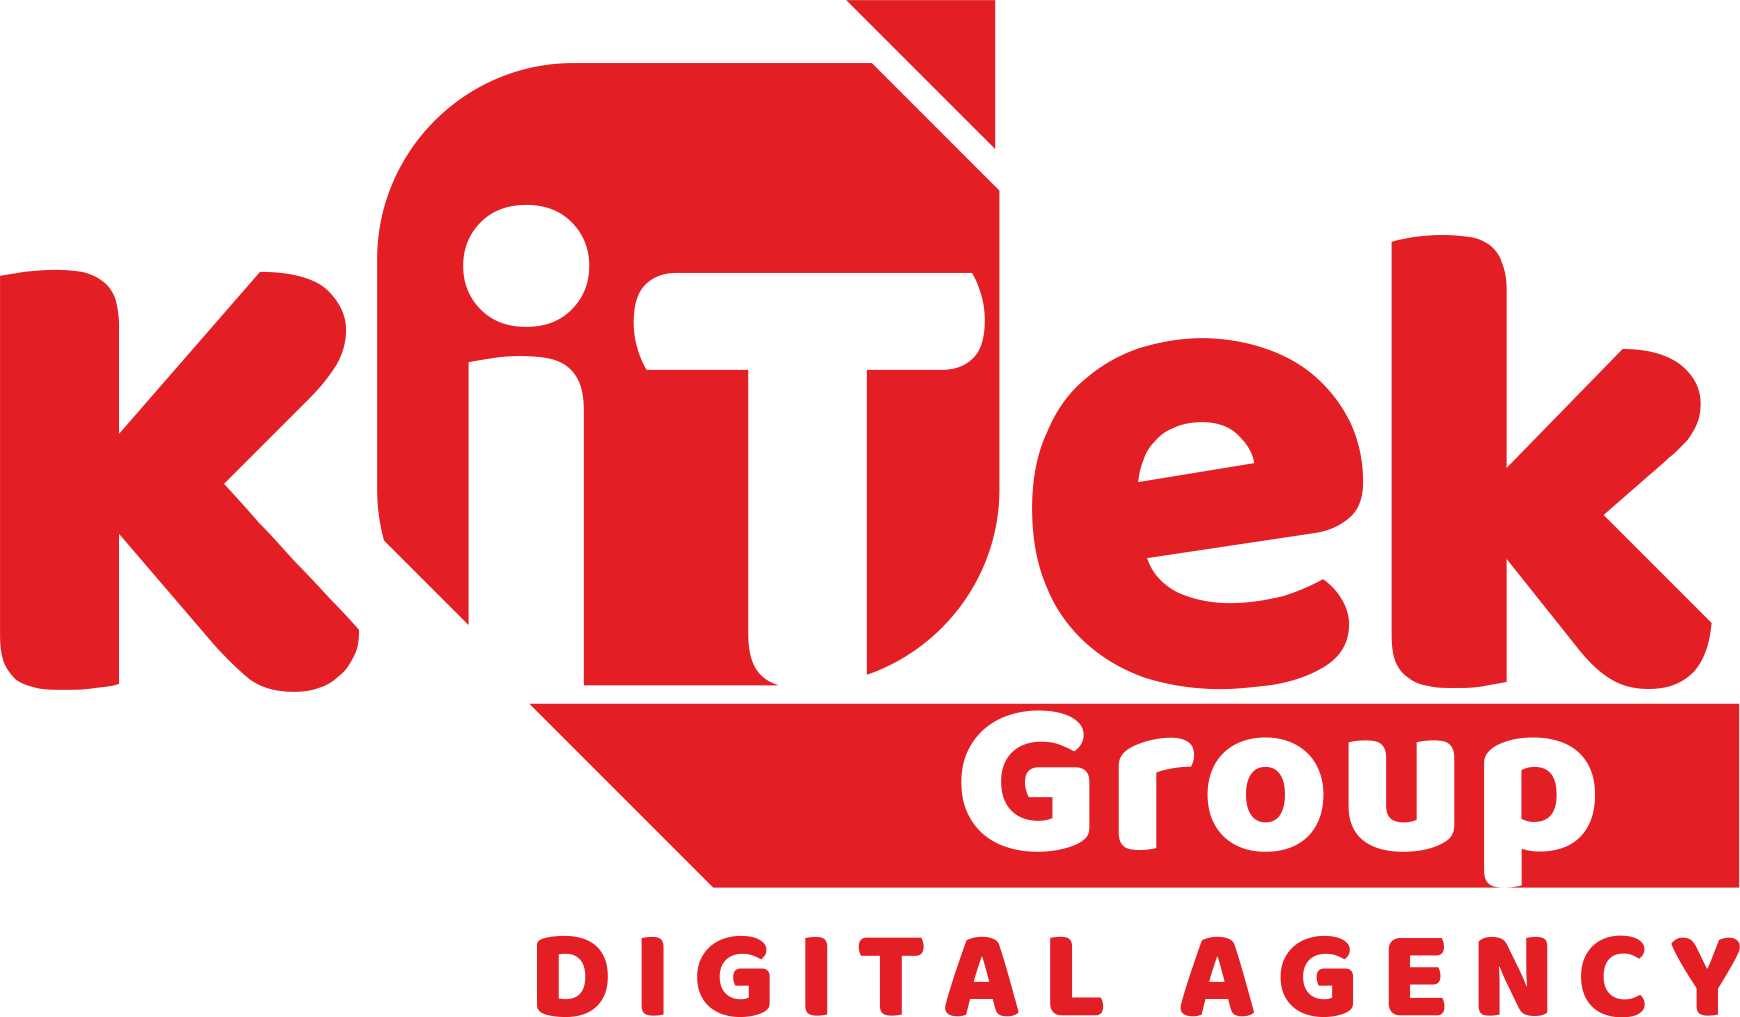 Digital Agency for your Business Growth